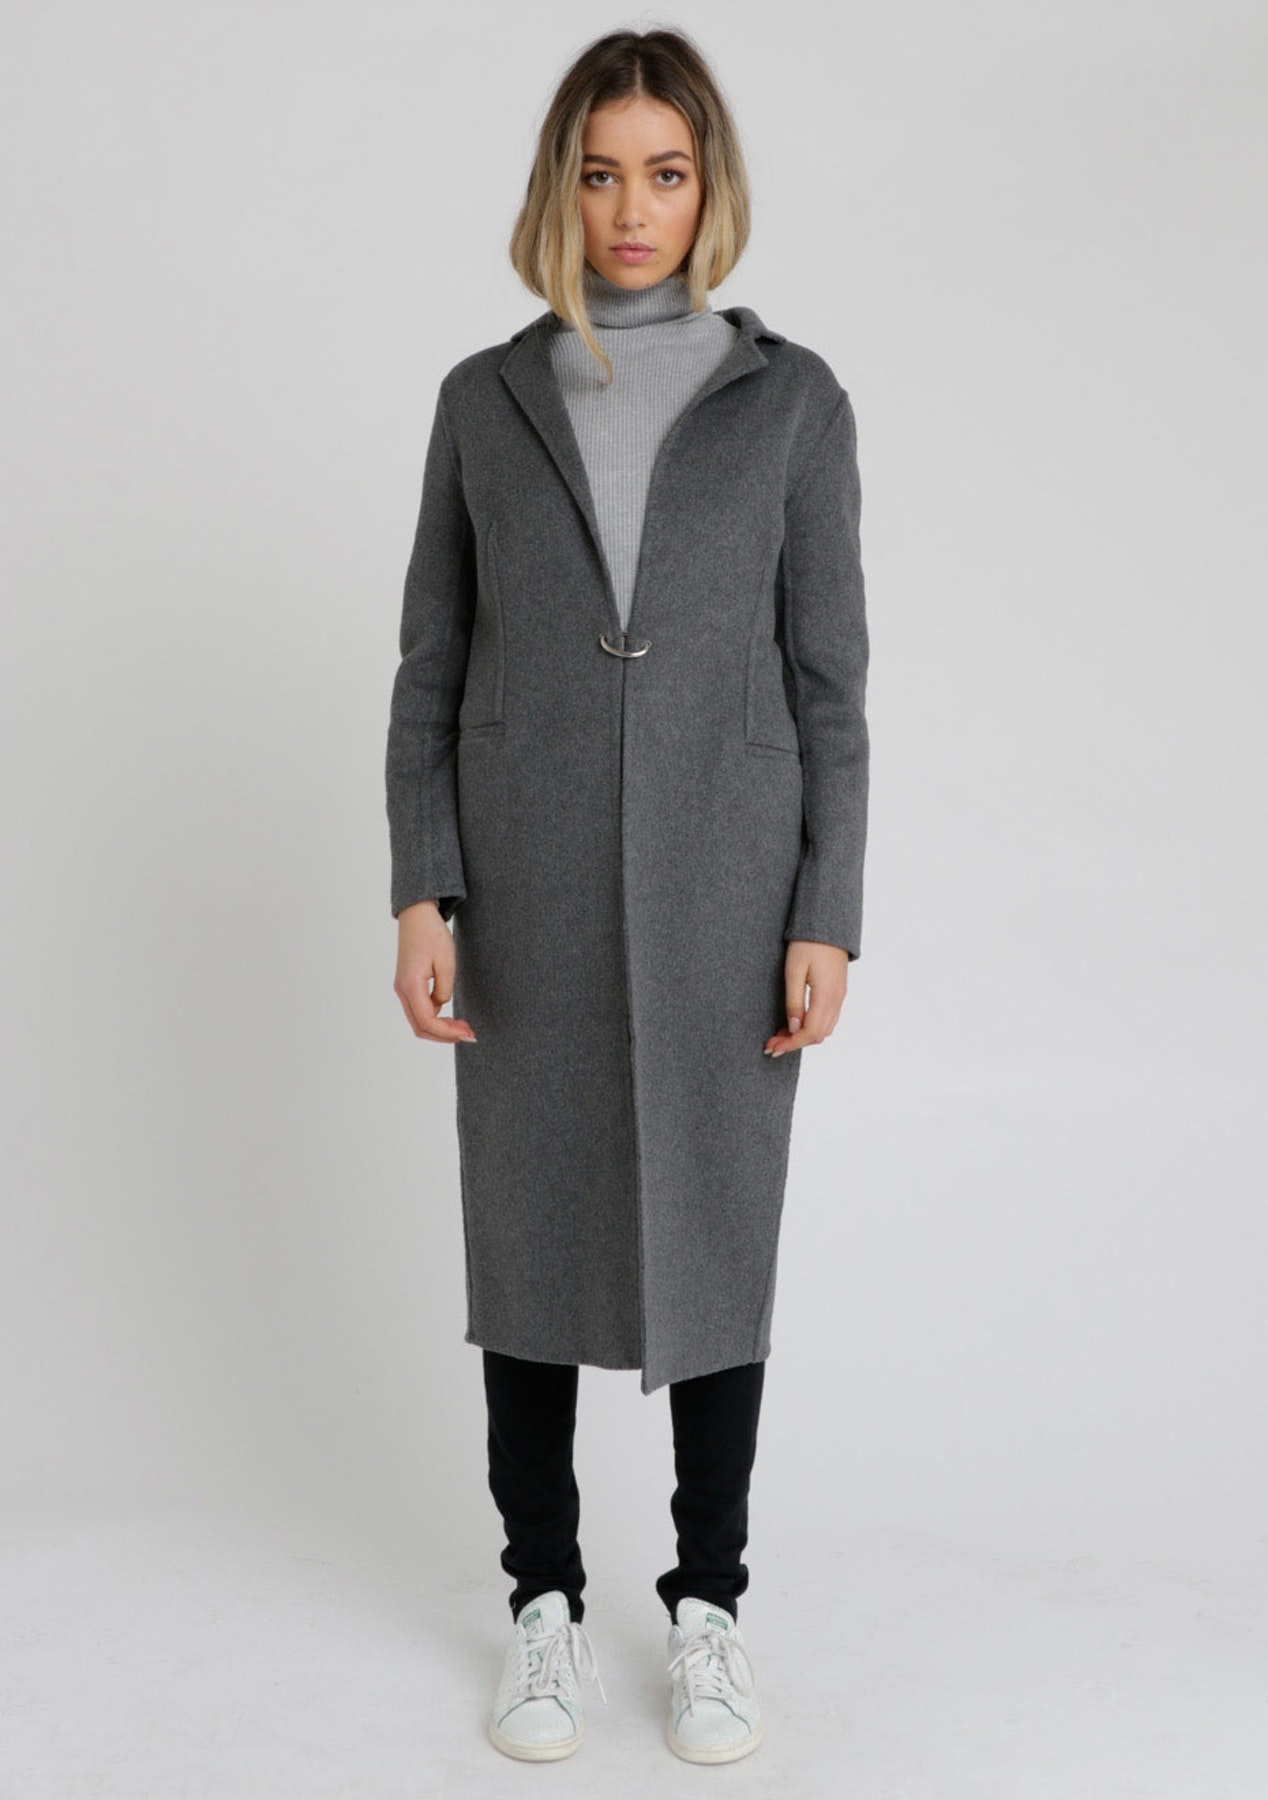 ELSIE LONG COAT  - MARLE DARK GREY